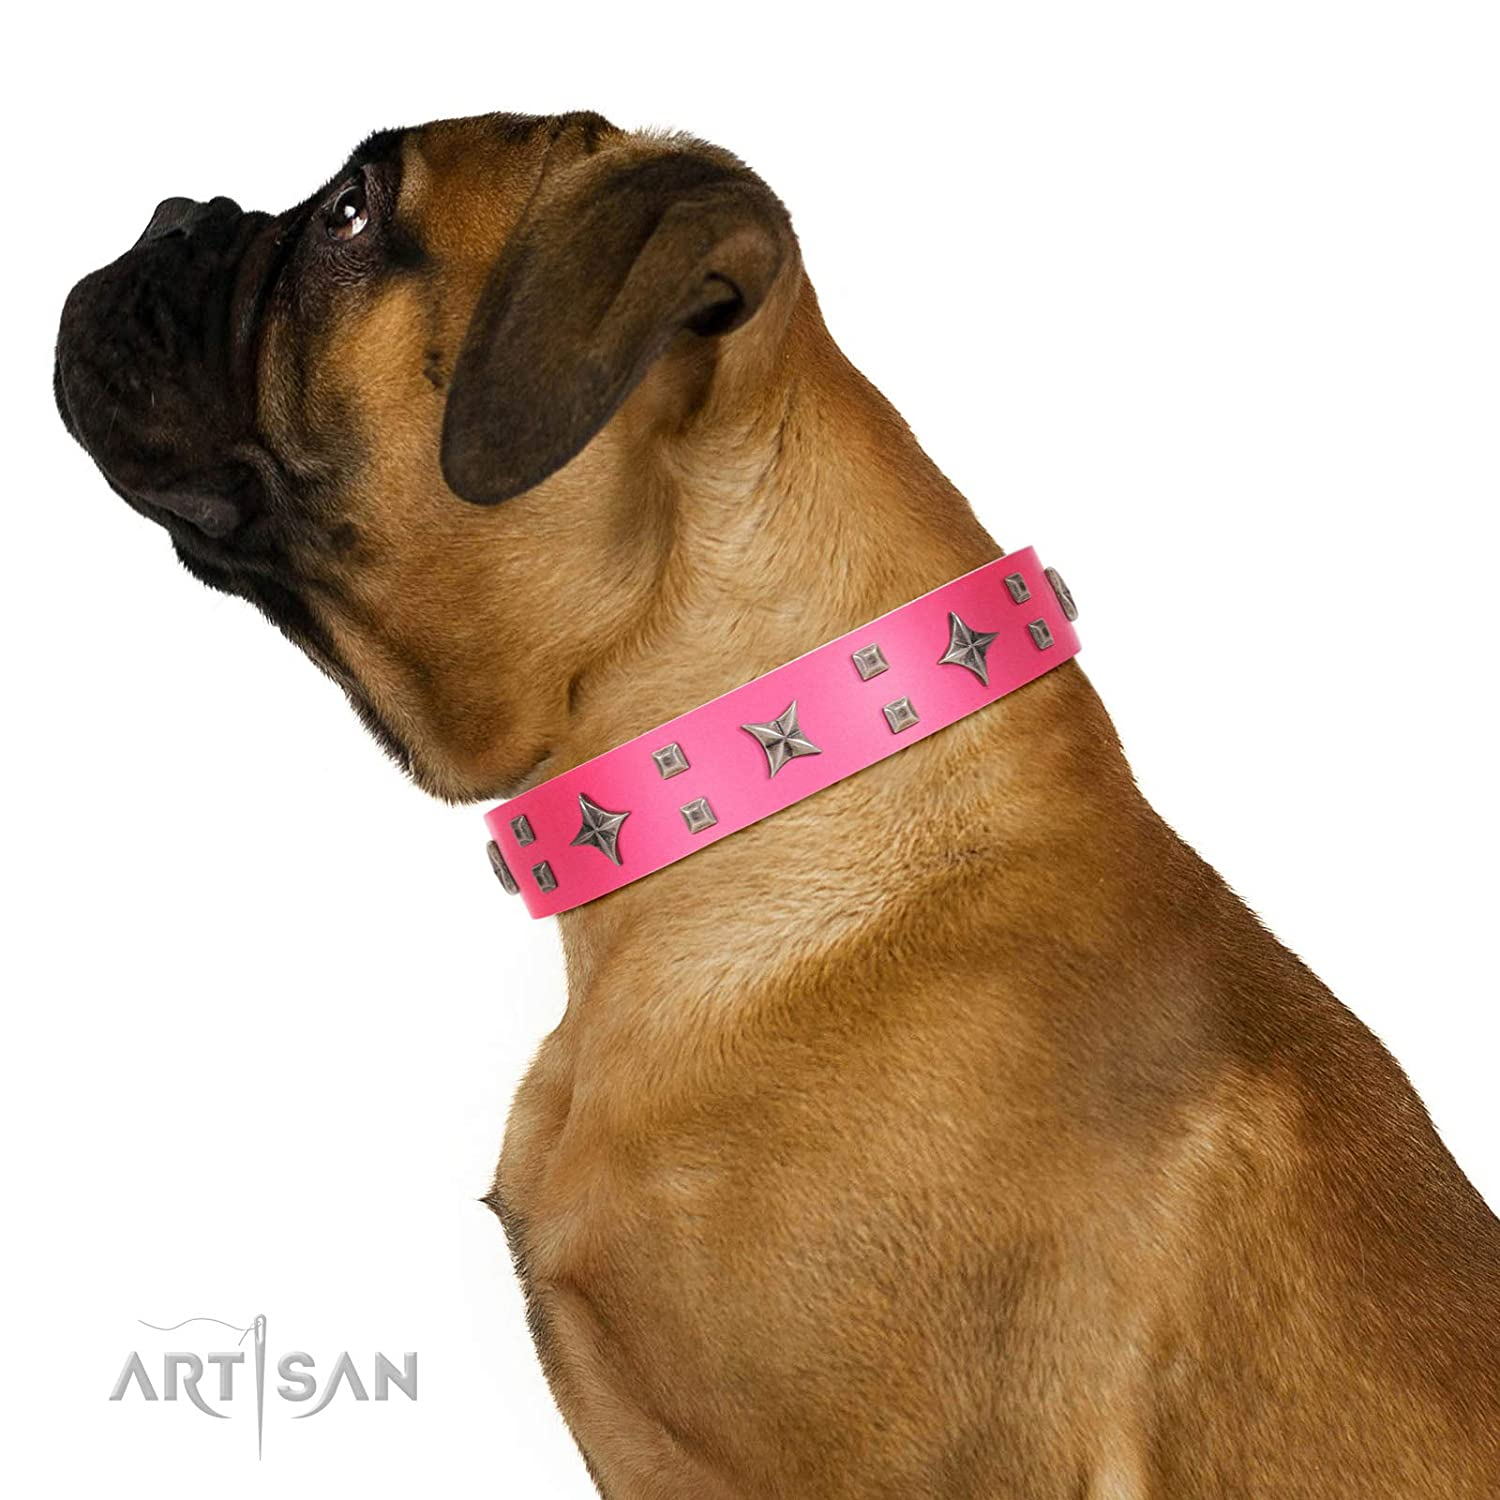 Fits for 24 inch (60cm) dog's neck size FDT Artisan 24 inch Designer Pink Leather Dog Collar with Exclusive Decorations Stars in Pink Dreams 1 1 2 inch (40 mm) Wide